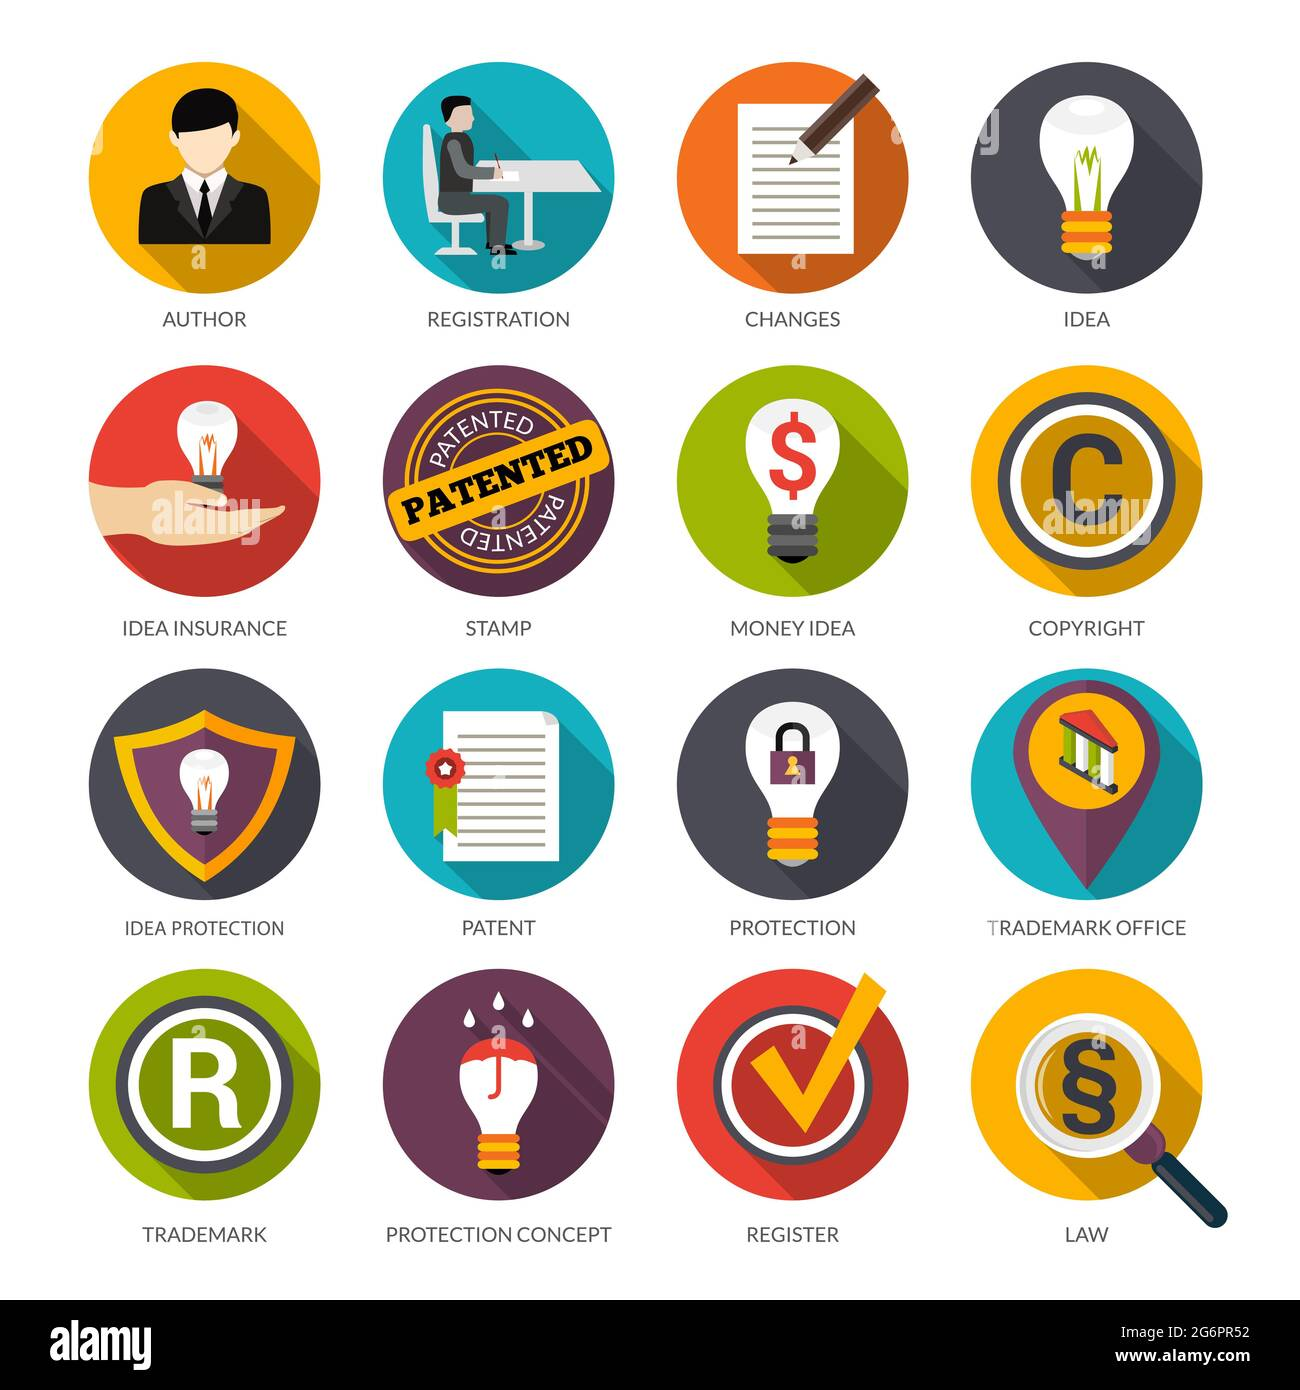 Patent idea protection flat icons set with author trademark copyright symbols isolated vector illustration Stock Vector